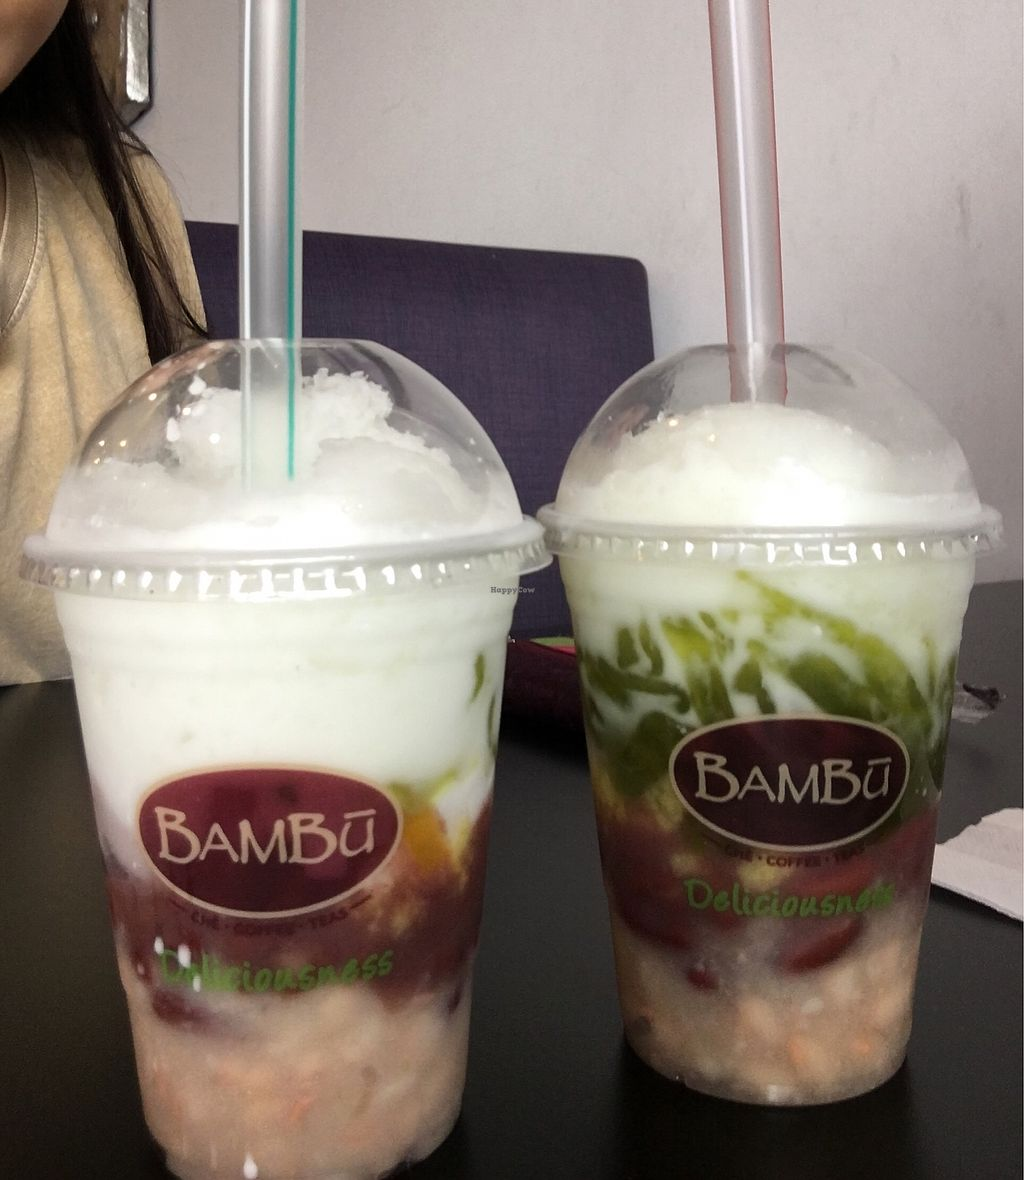 """Photo of Bambu Desserts & Drinks  by <a href=""""/members/profile/ChristineLee"""">ChristineLee</a> <br/>#2 and #3 Che dessert  <br/> August 20, 2017  - <a href='/contact/abuse/image/98038/294891'>Report</a>"""